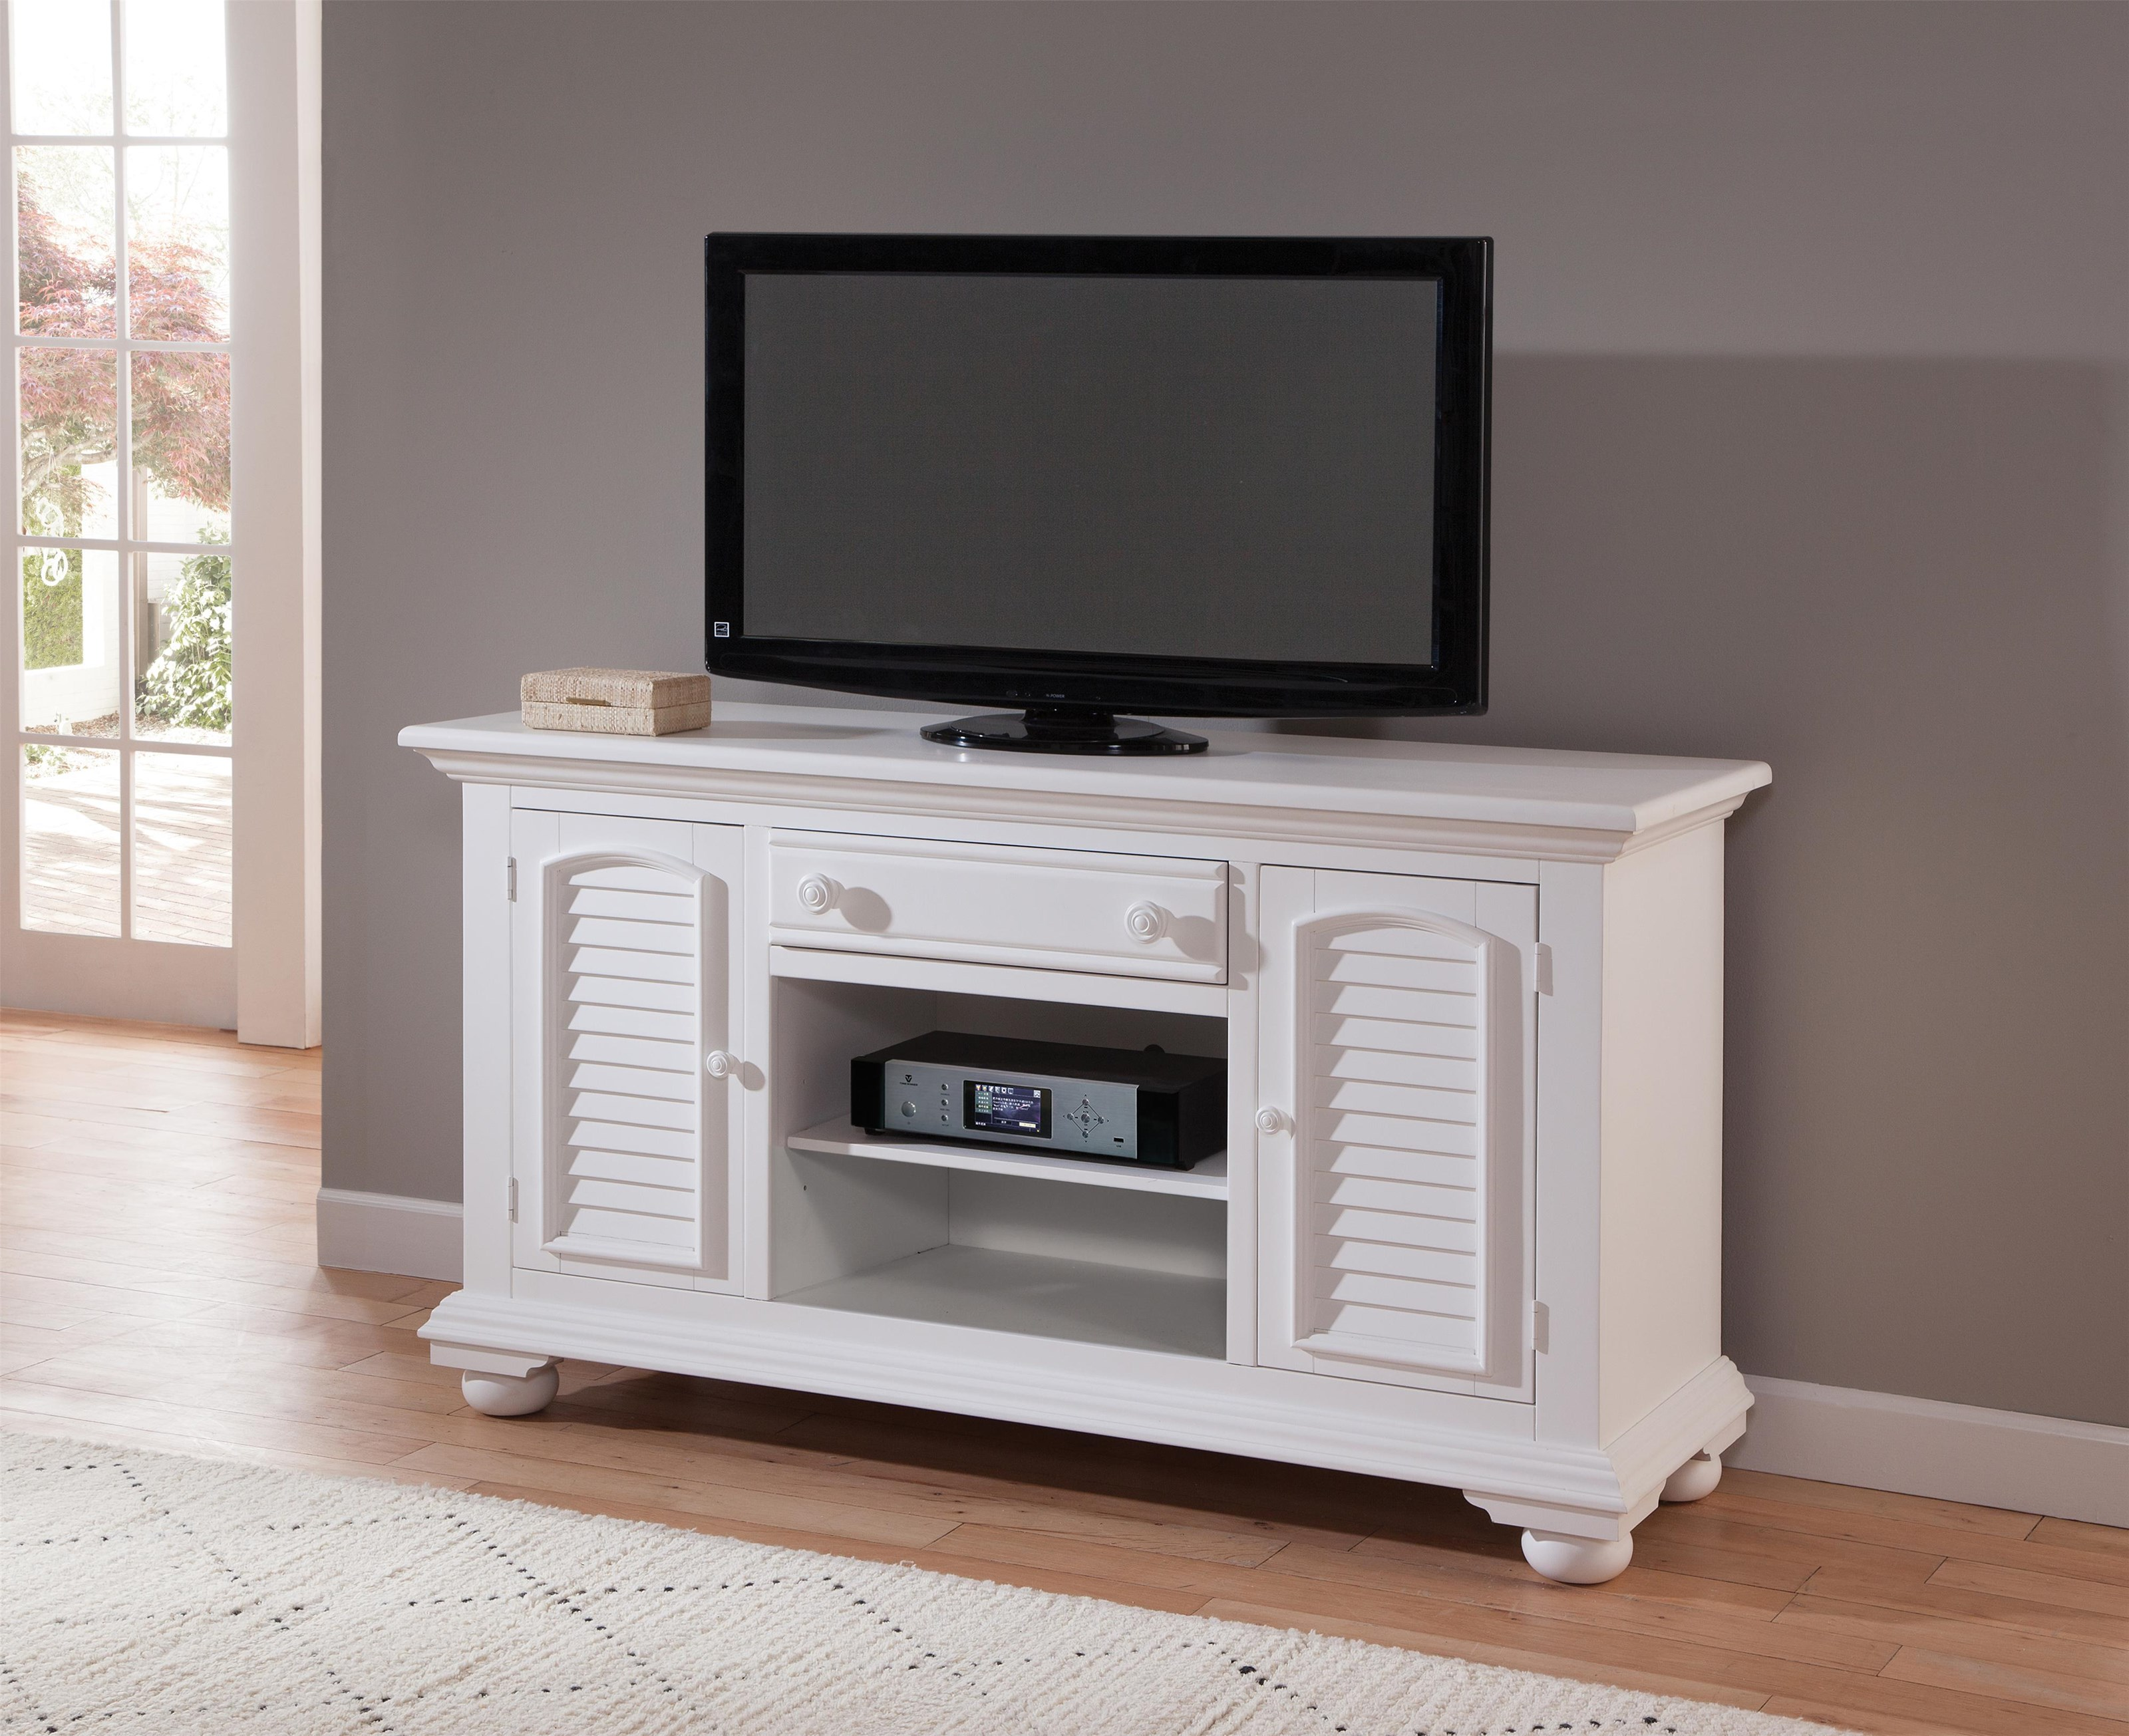 Cottage Traditions 60 Inch Entertainment Center by American Woodcrafters at Johnny Janosik